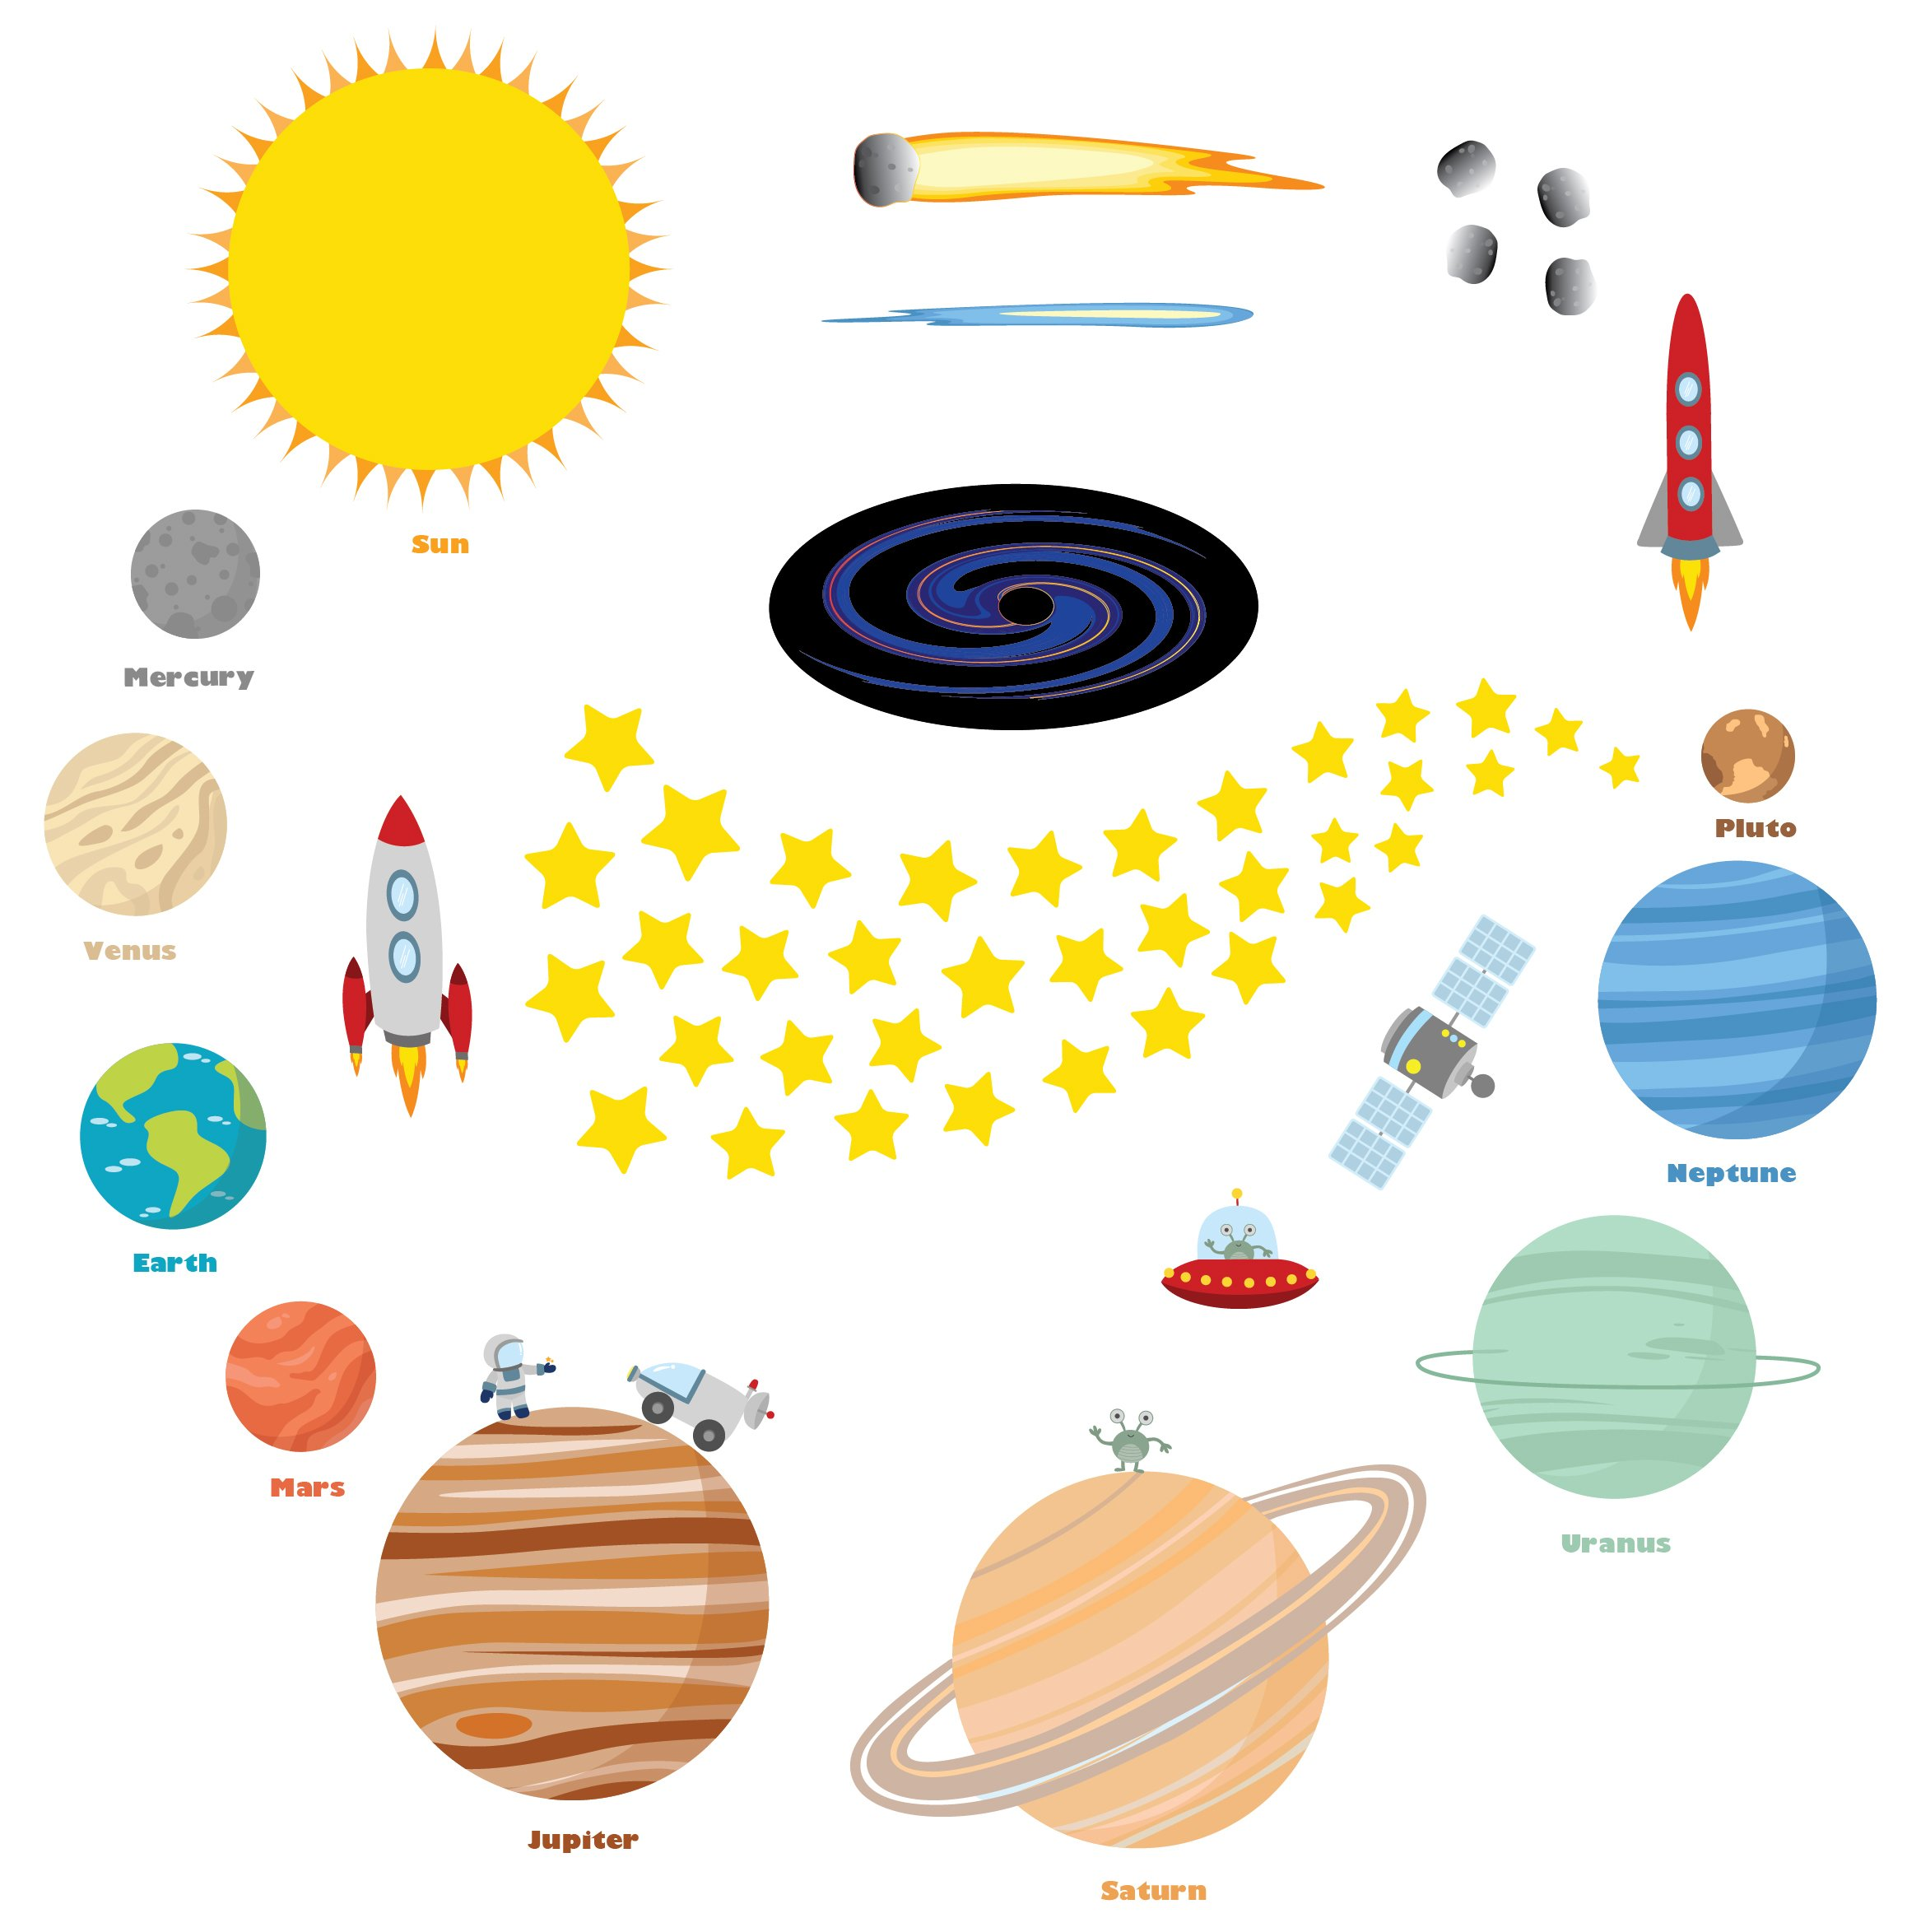 Kids Space Wall Decal Stickers: Large Removable Solar System Planets & Stars Decor for Boys and Girls Rooms - Peel & Stick Outer Space Decorations for Bedroom Playroom or Classroom Art Decals